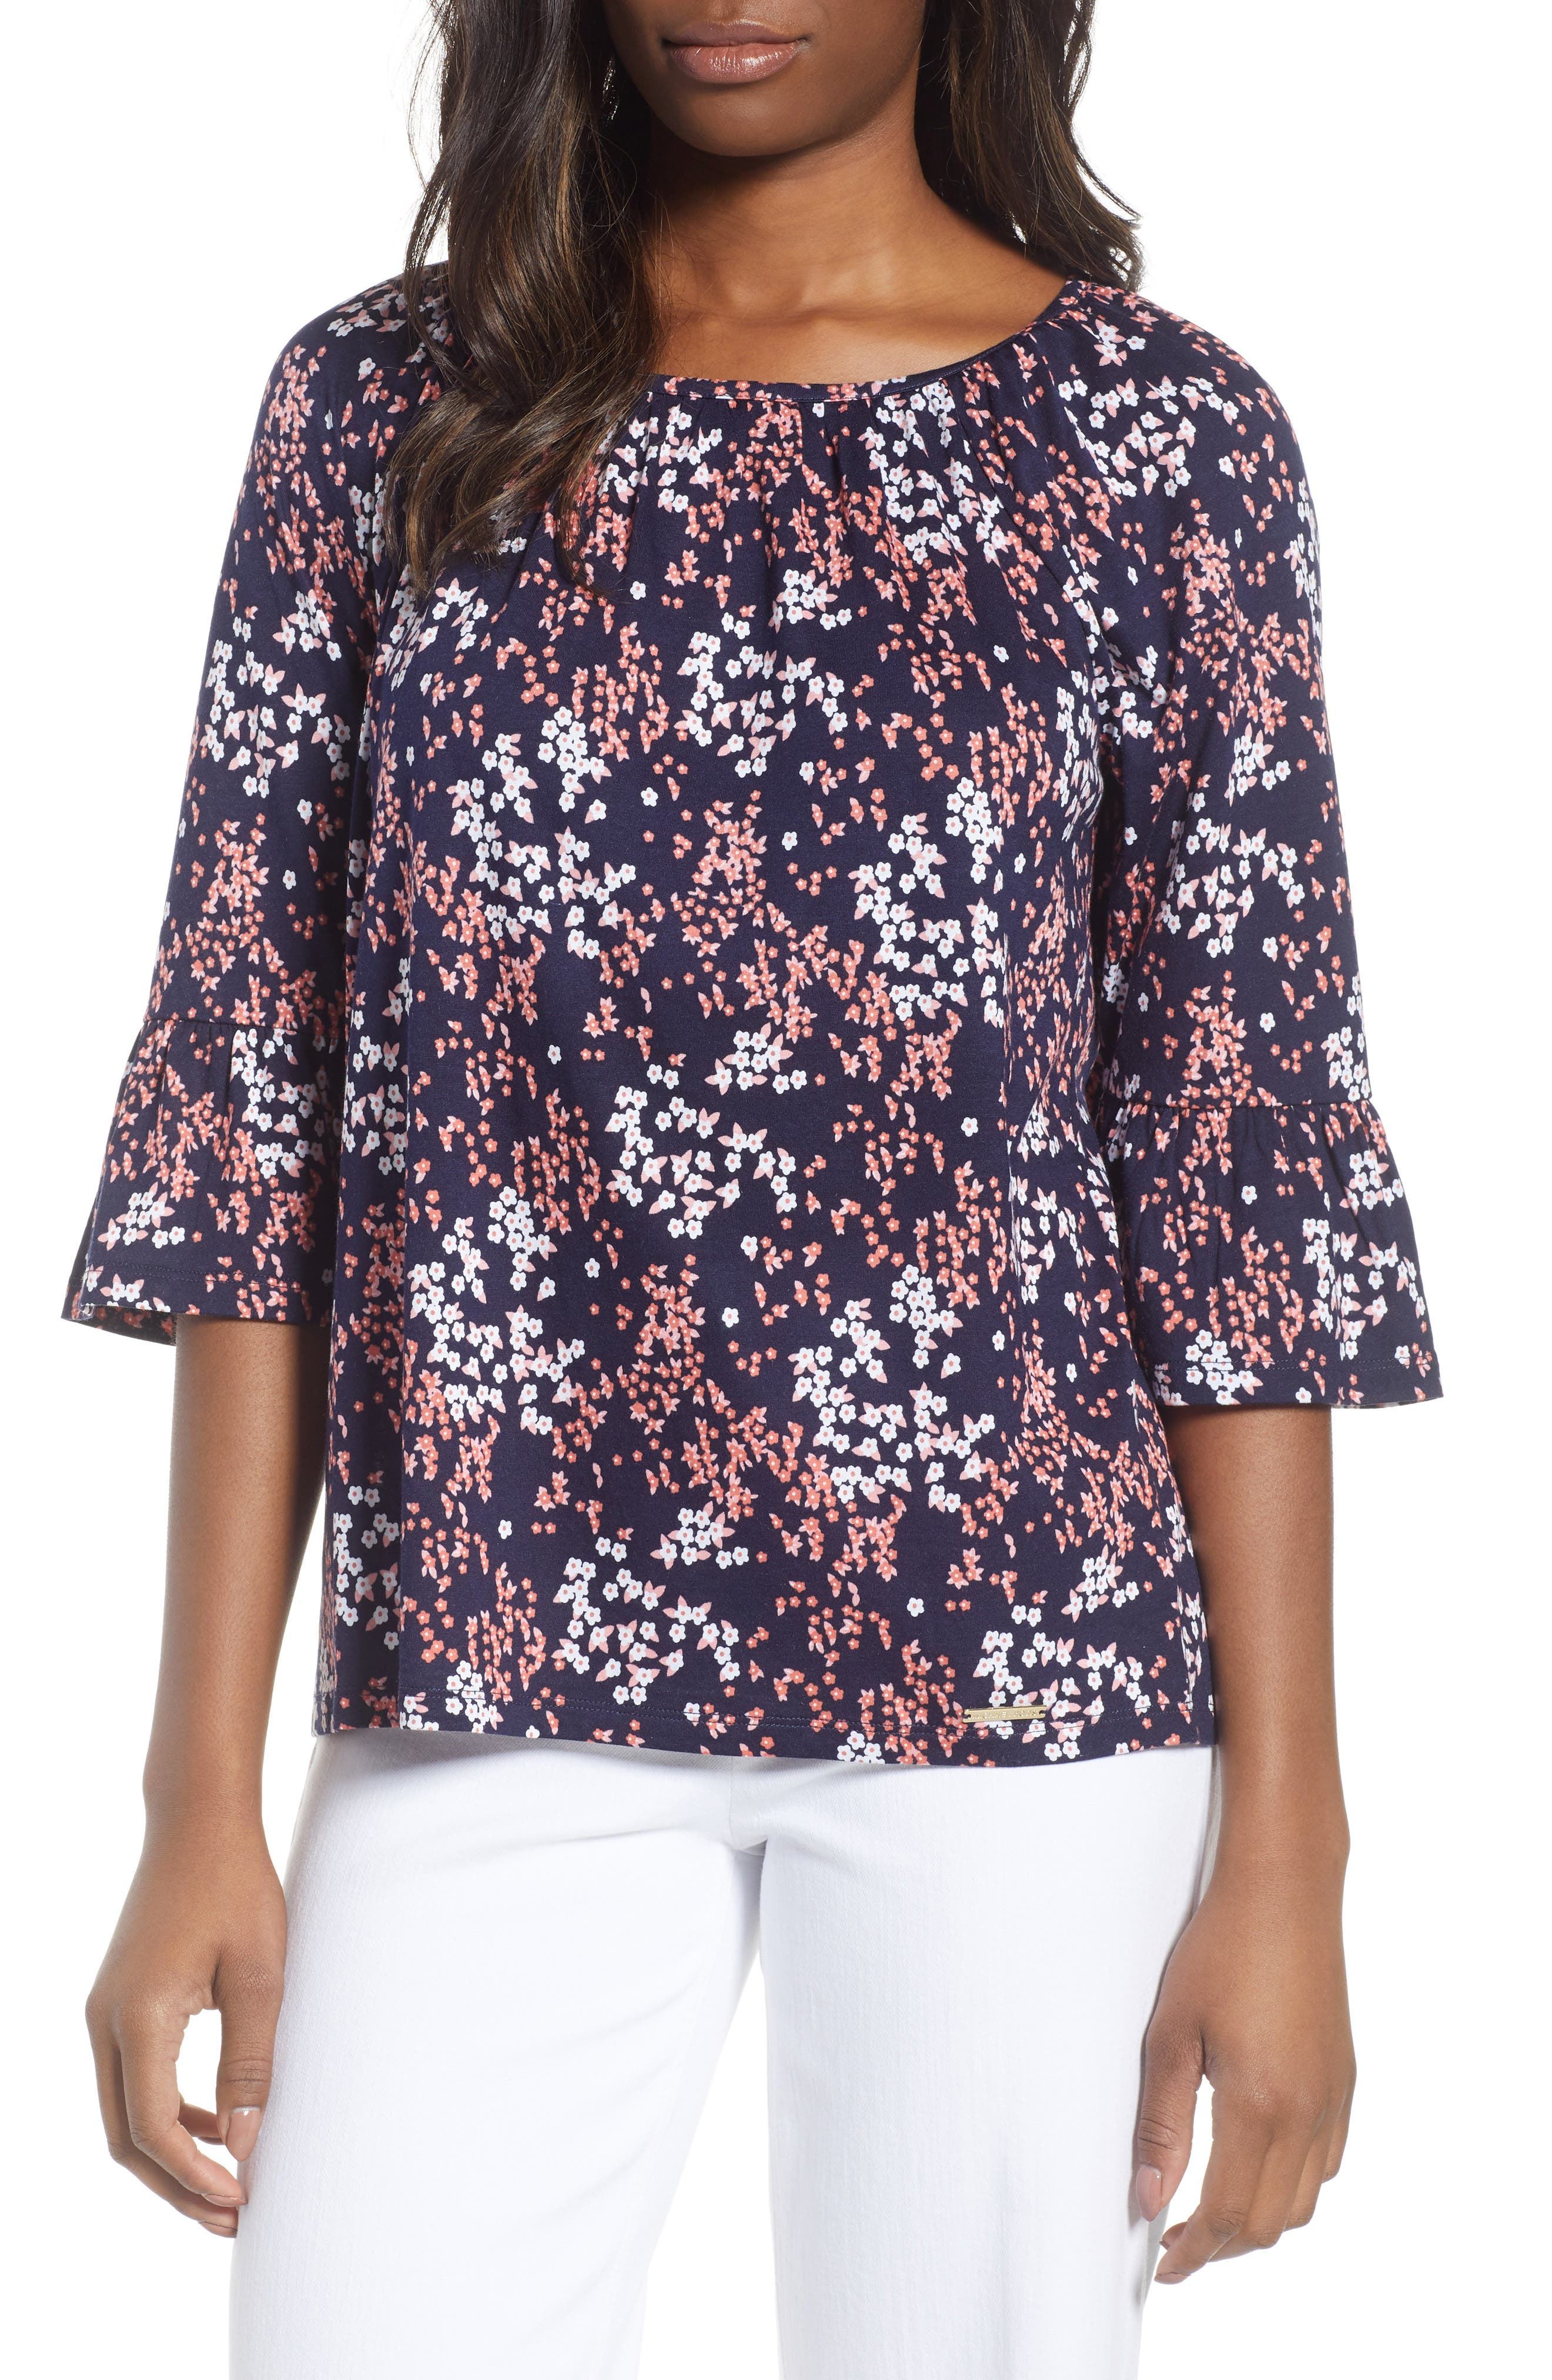 Scattered Blooms Print Peasant Top,                             Main thumbnail 1, color,                             True Navy/ Bright Blush